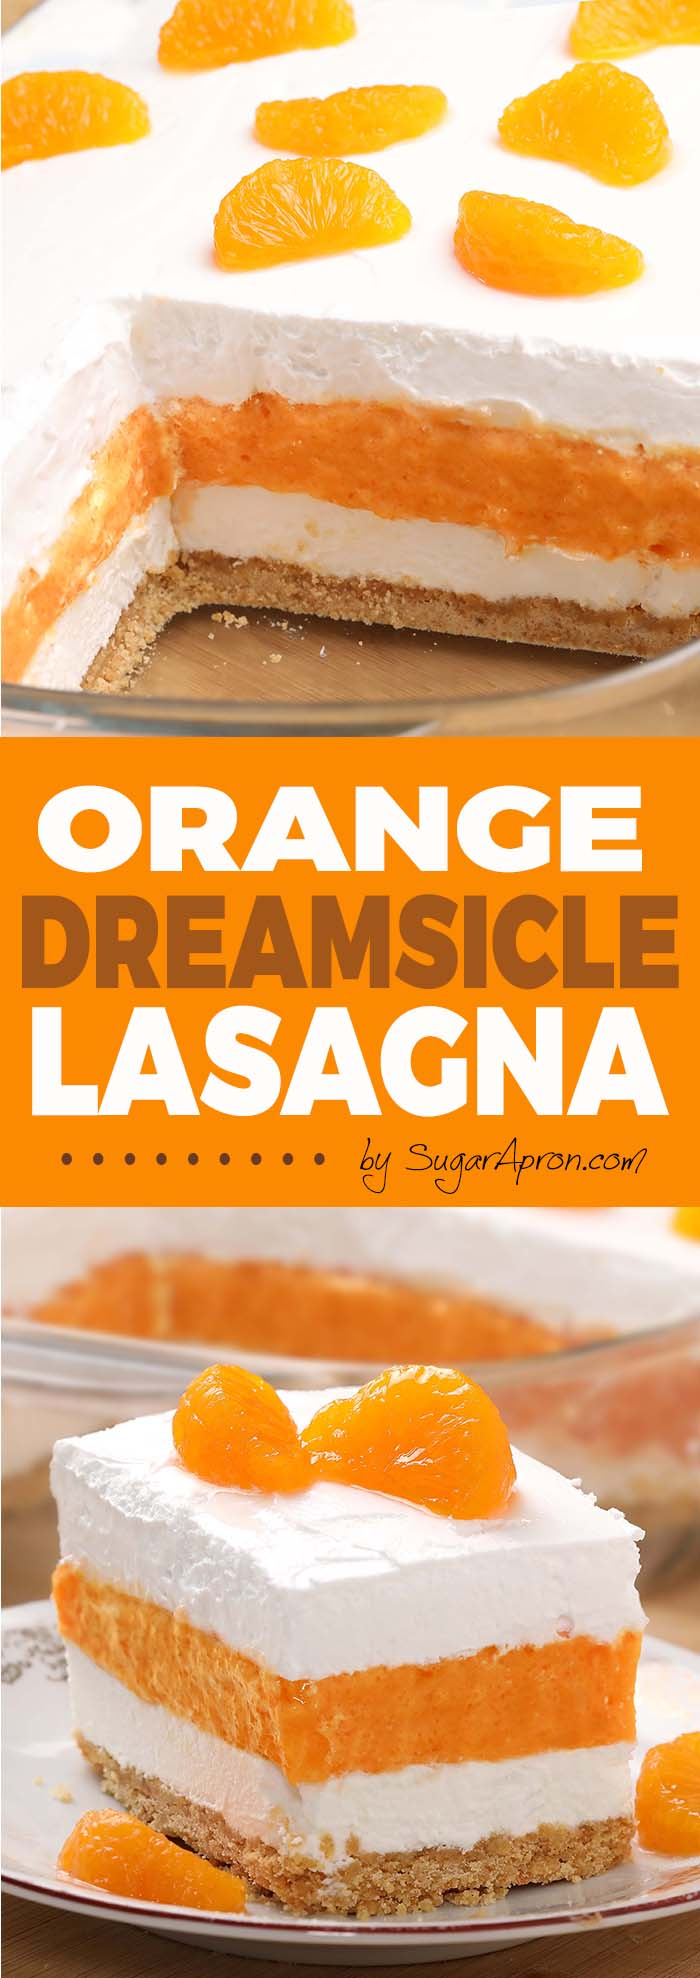 Your favorite childhood ice cream treat becomes a refreshing and creamy potluck dessert. Orange Dreamsicle Lasagna will be the perfect addition to your Easter, Mother's Day menu or any spring/summer gatherings.